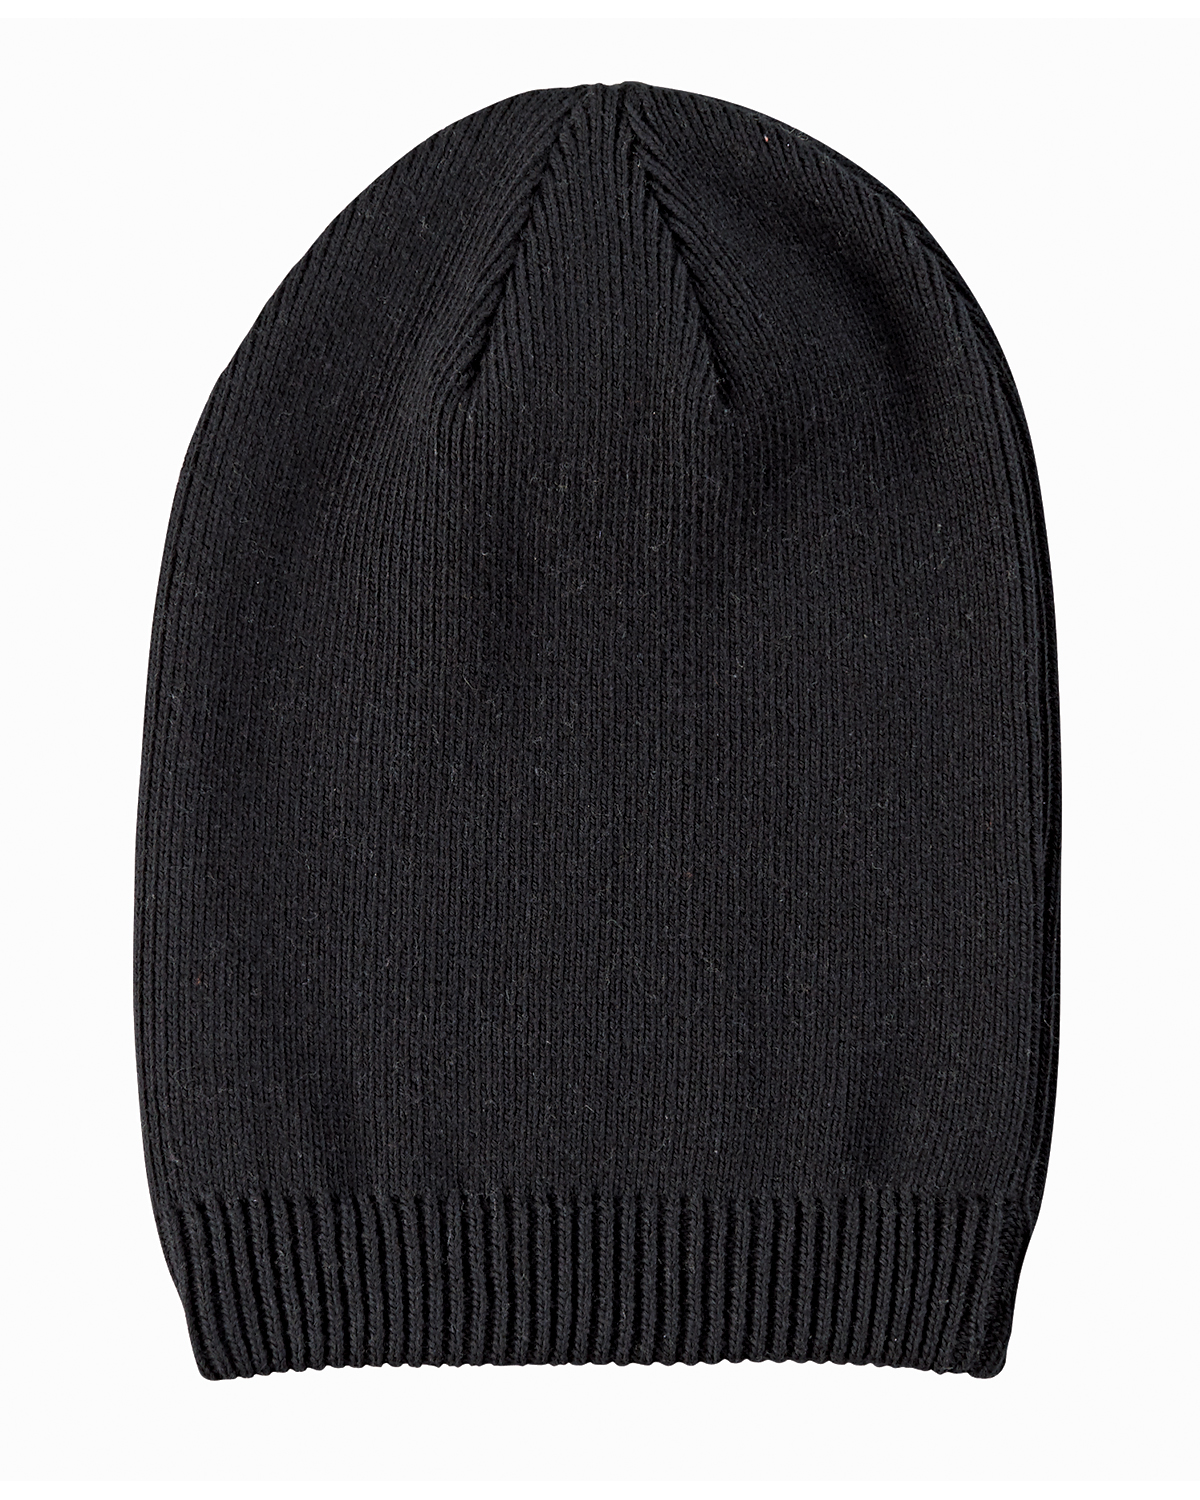 Certified Organic Cotton Slouch Beanie Winter Hat Knit 09b5824a2d7